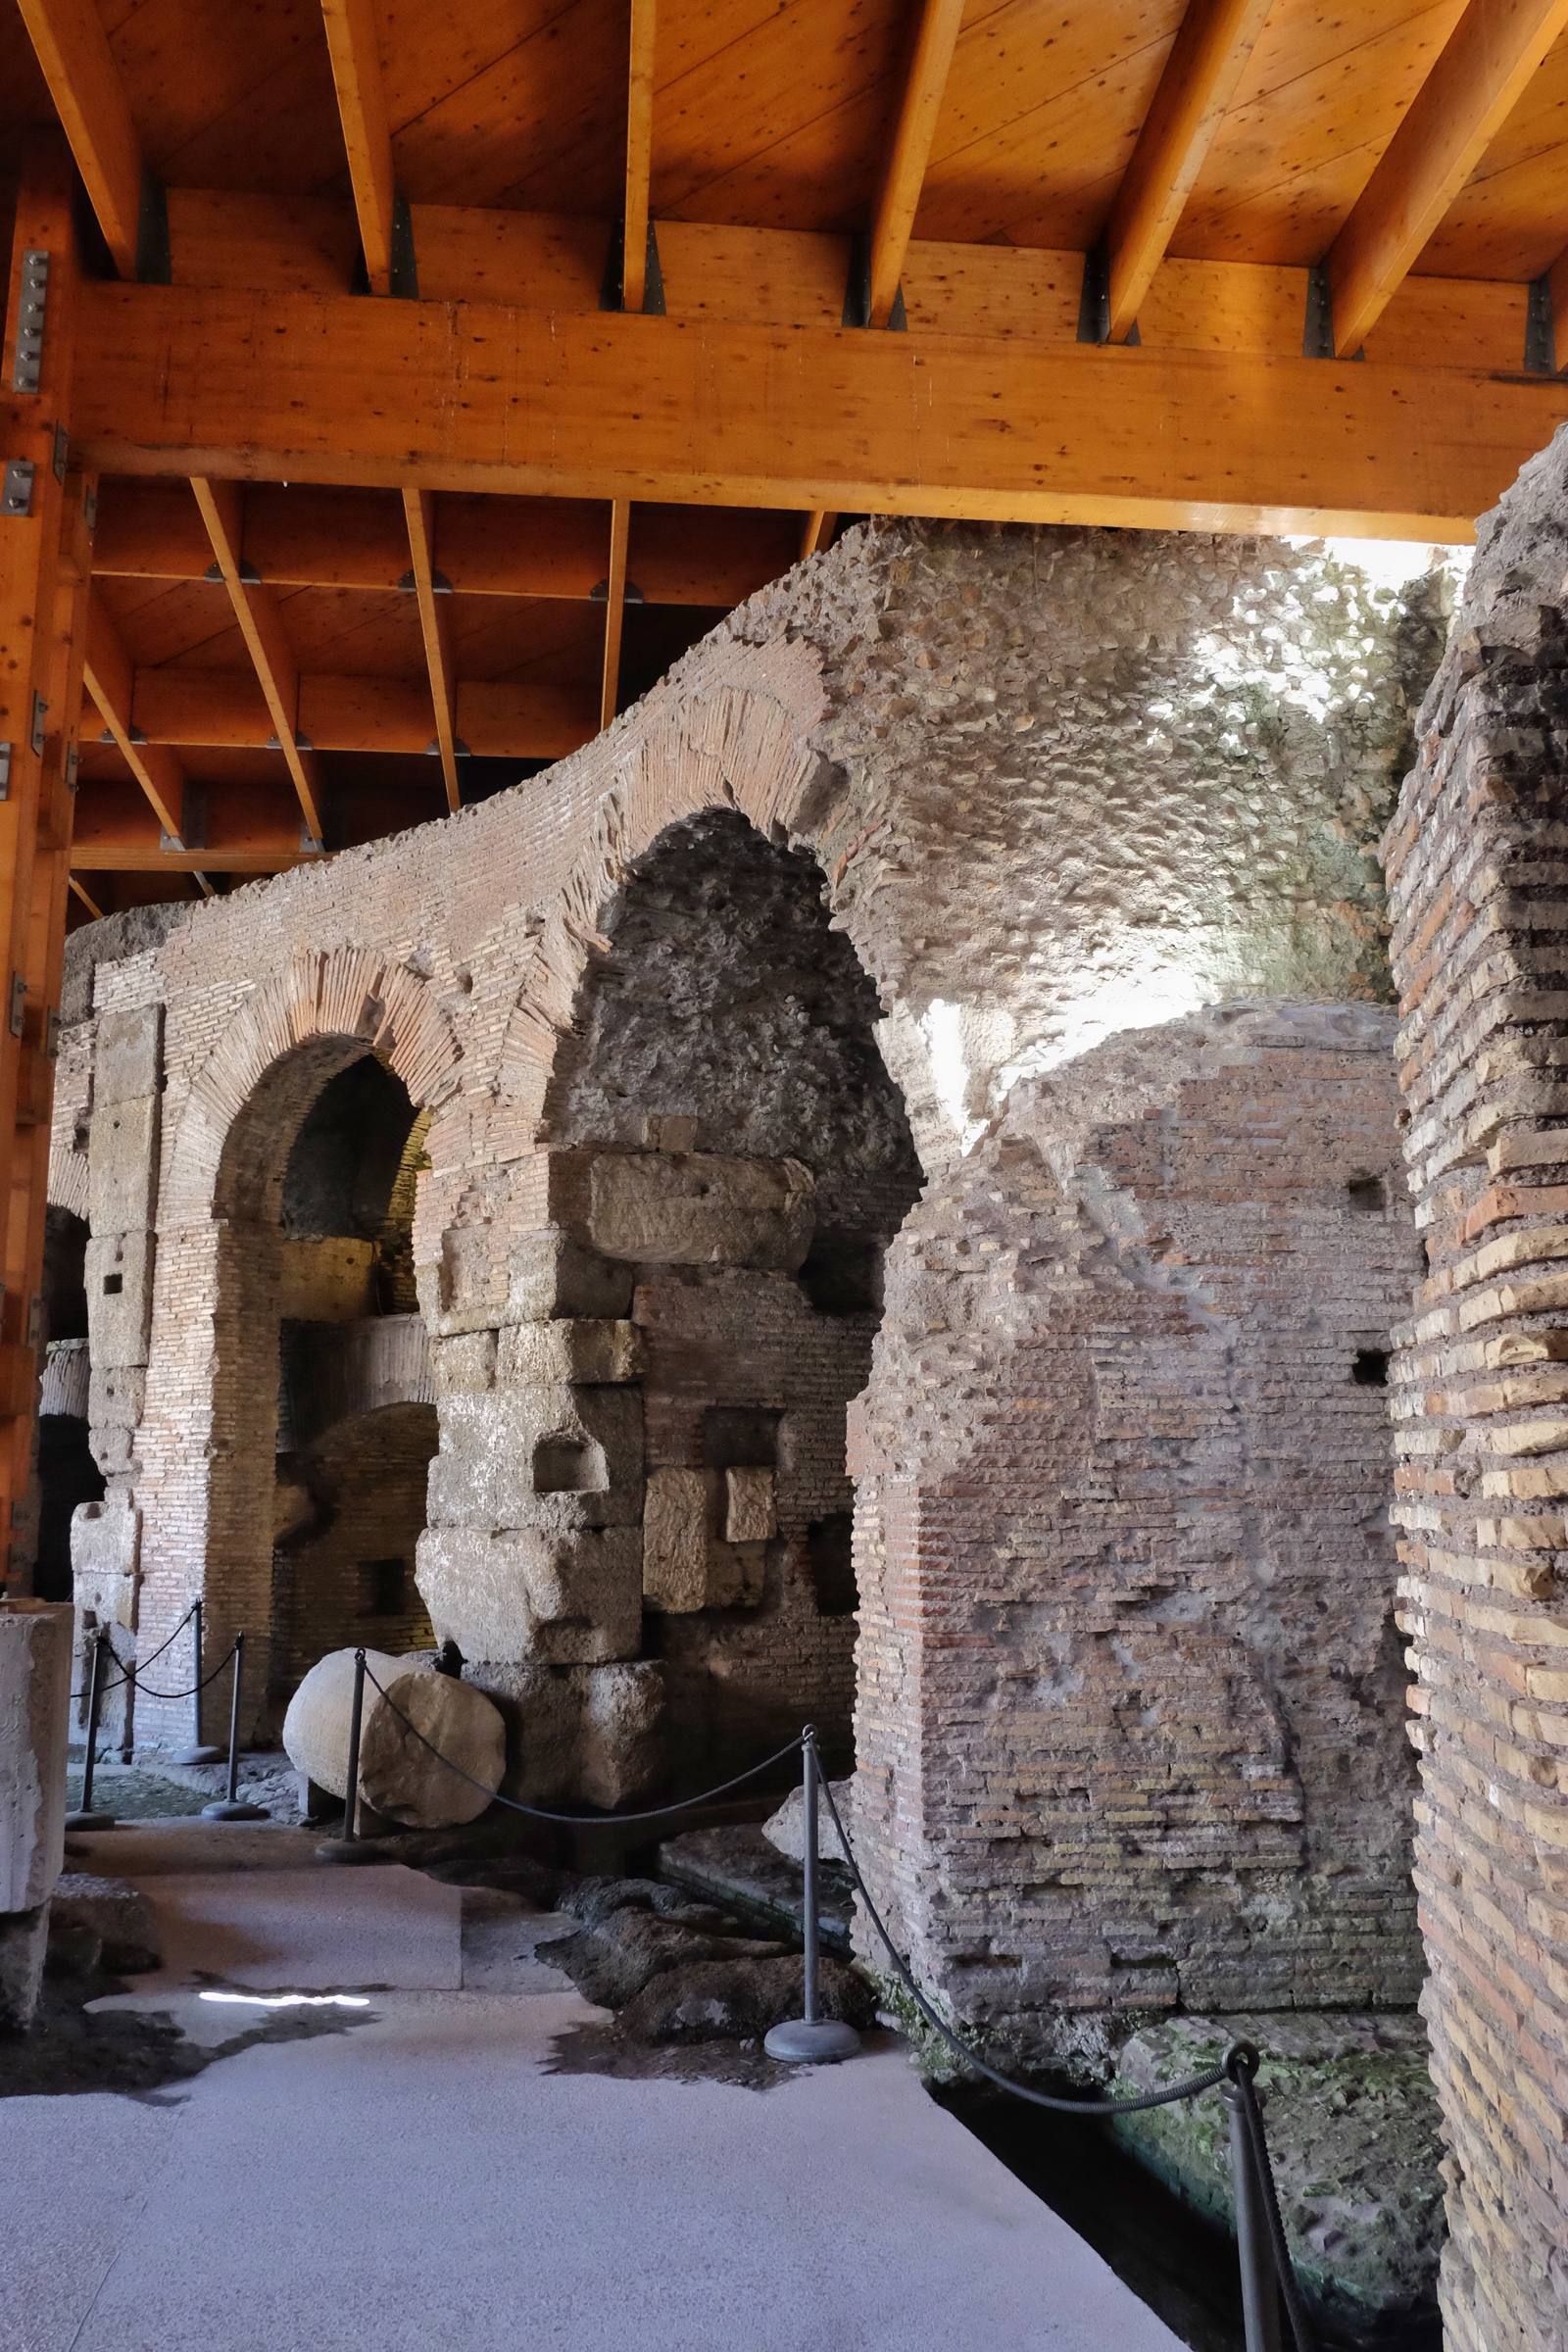 The alcoves under the Colosseum floor where animals would be held.